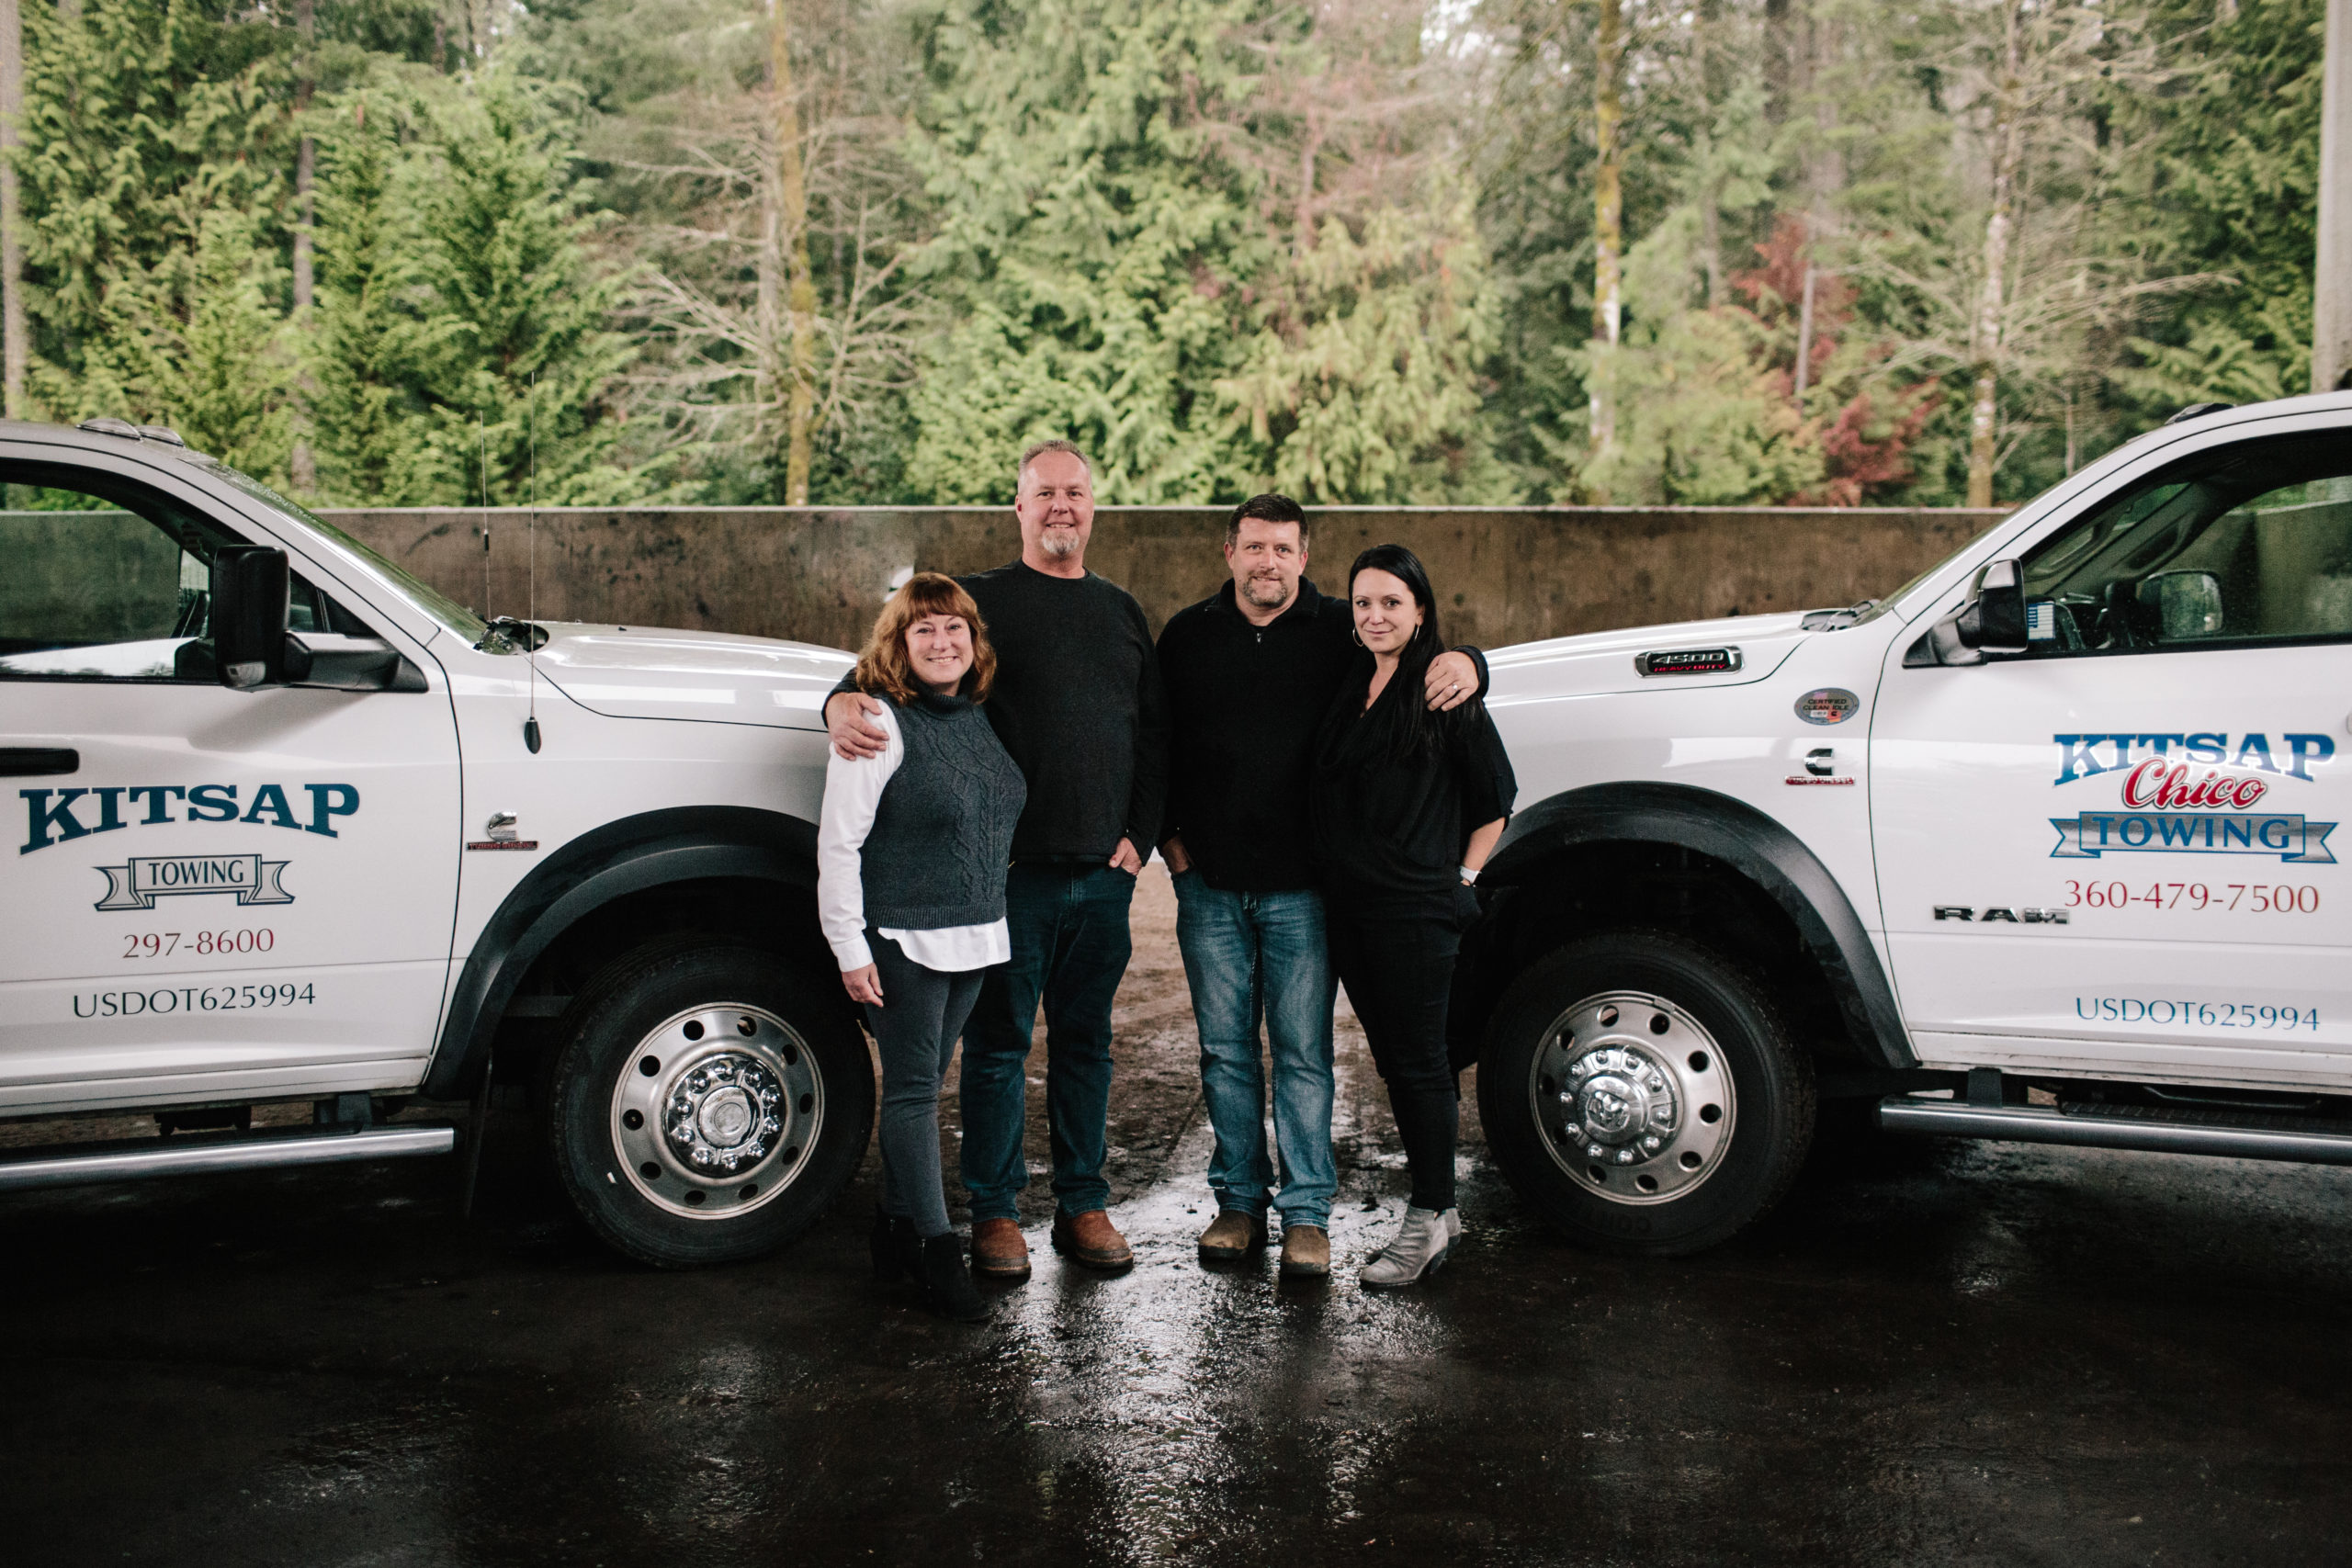 Sometimes bigger is better. Meet Kitsap Chico Towing.